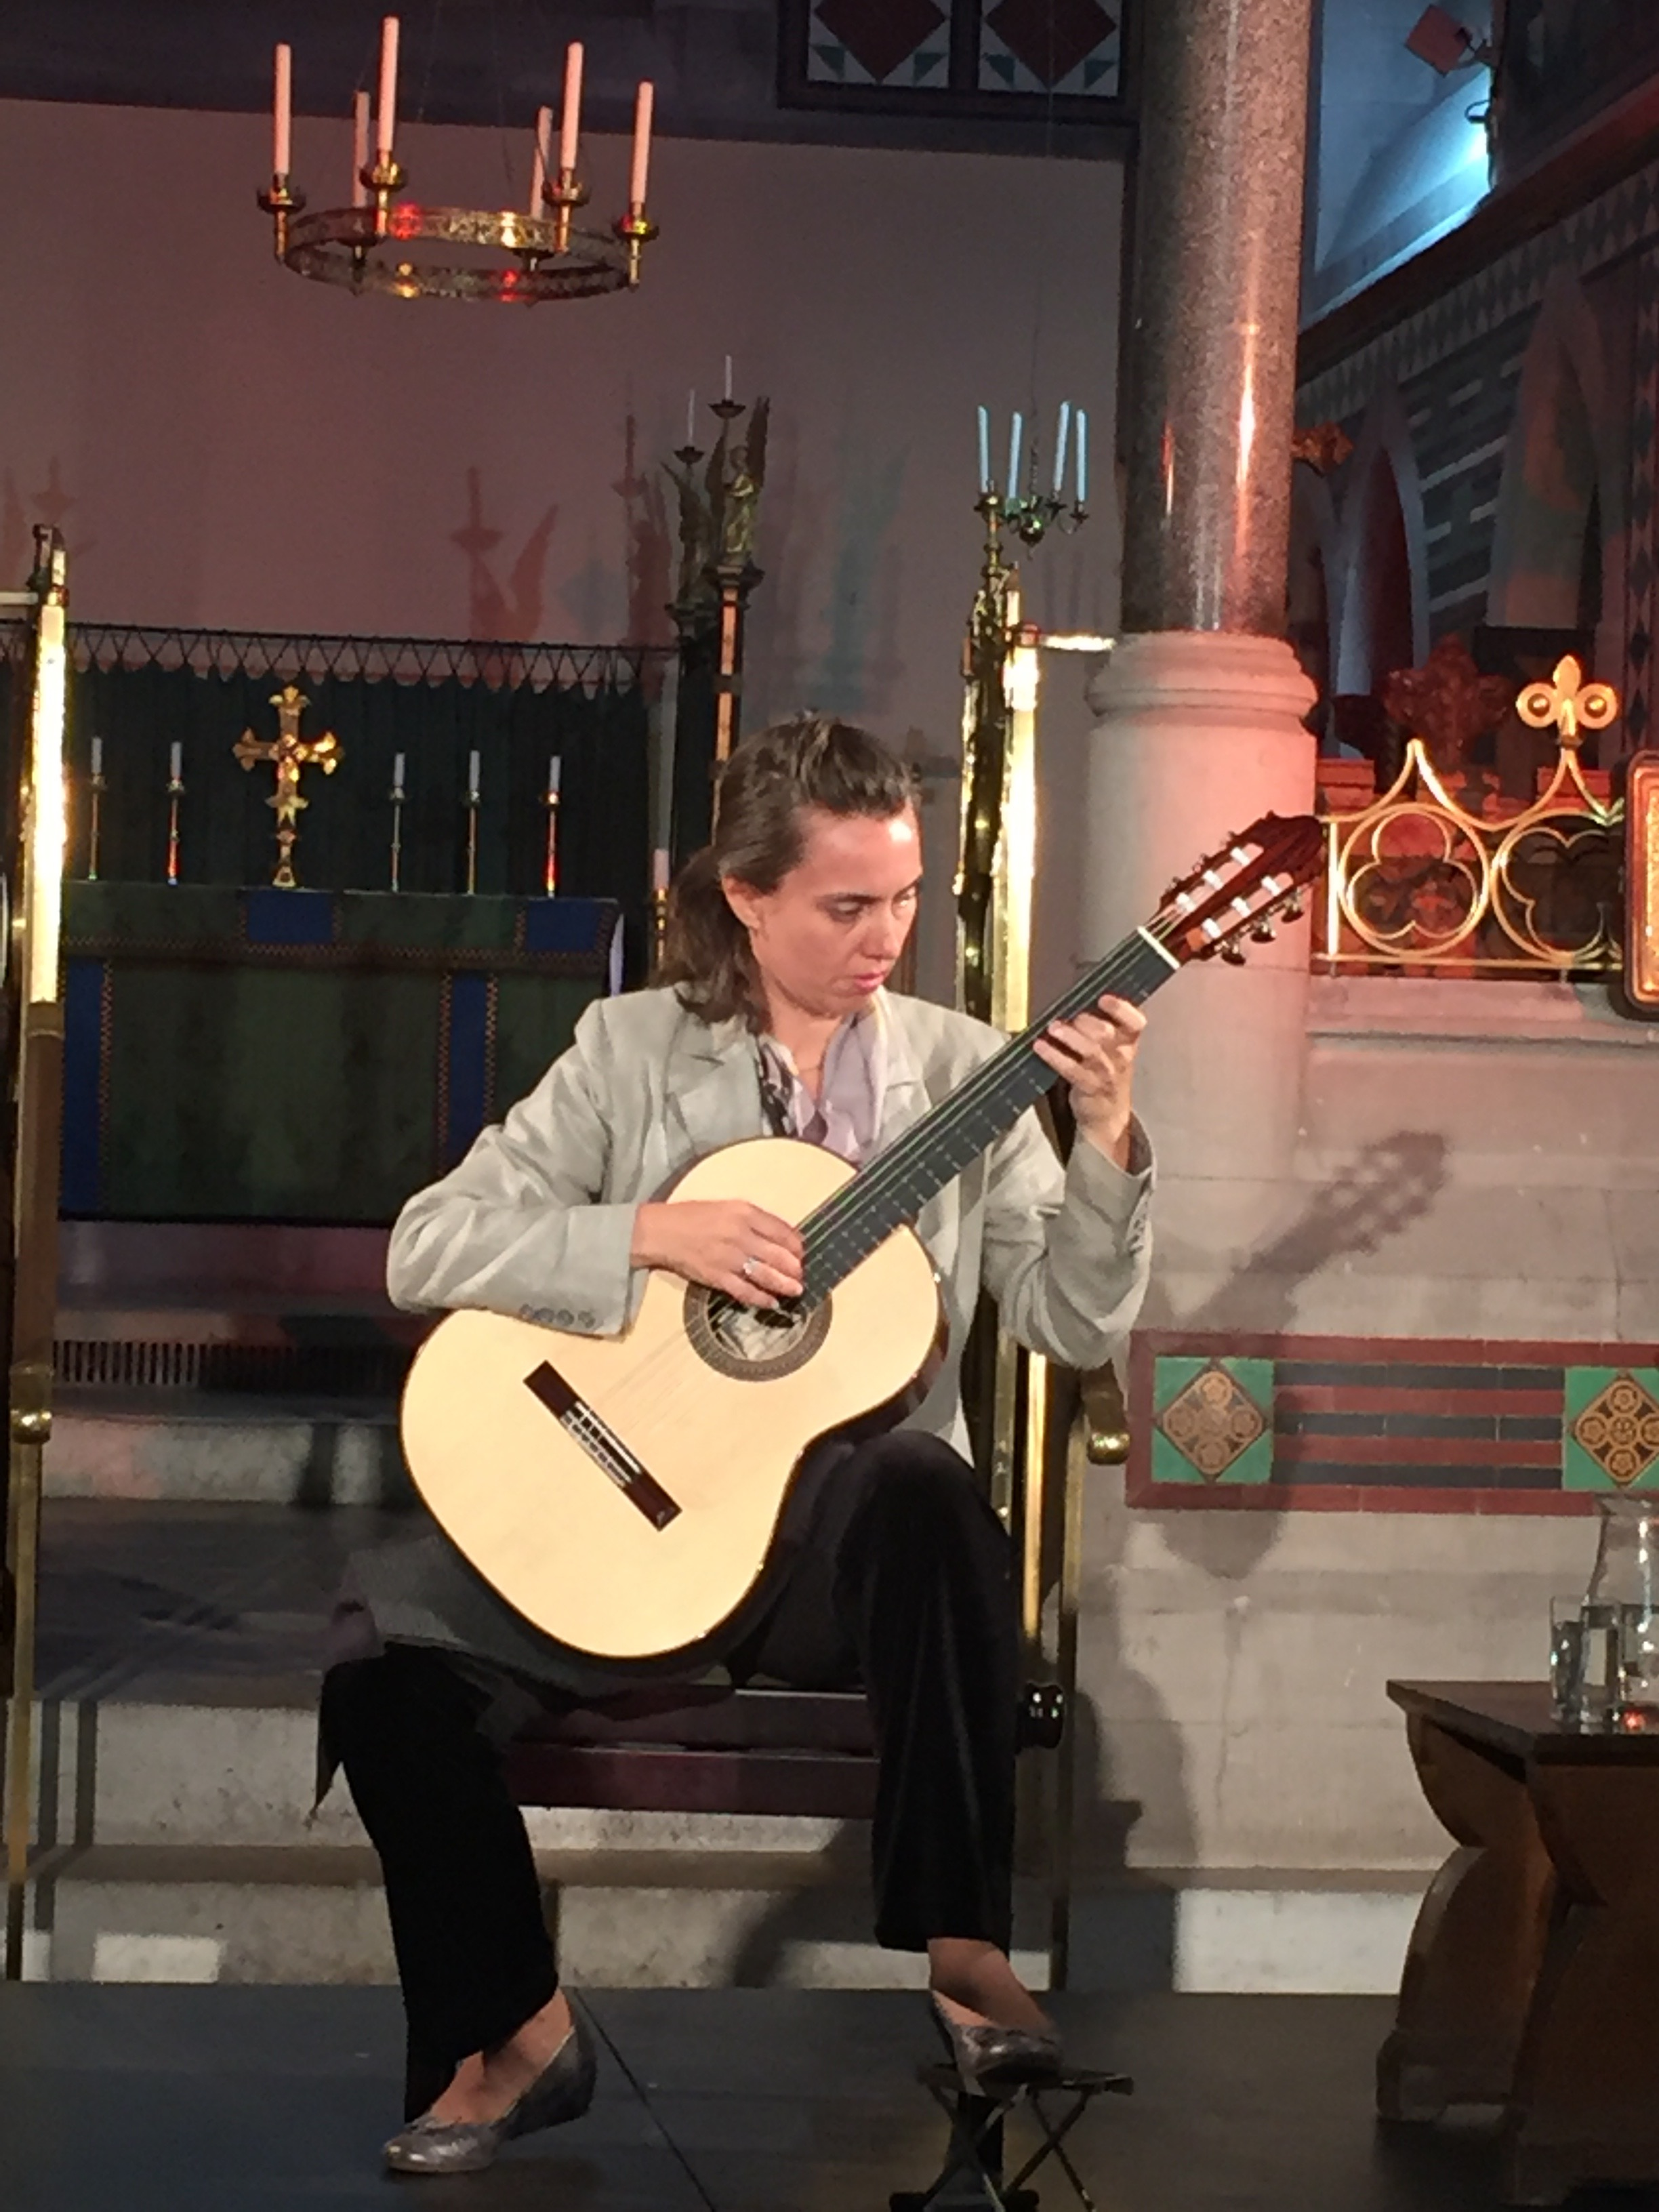 Saturday night, we had a guitar play-off, in which the luthiers visiting and showing instruments were treated to comparisons of their guitars, as played by the poetic Elina Chekan.